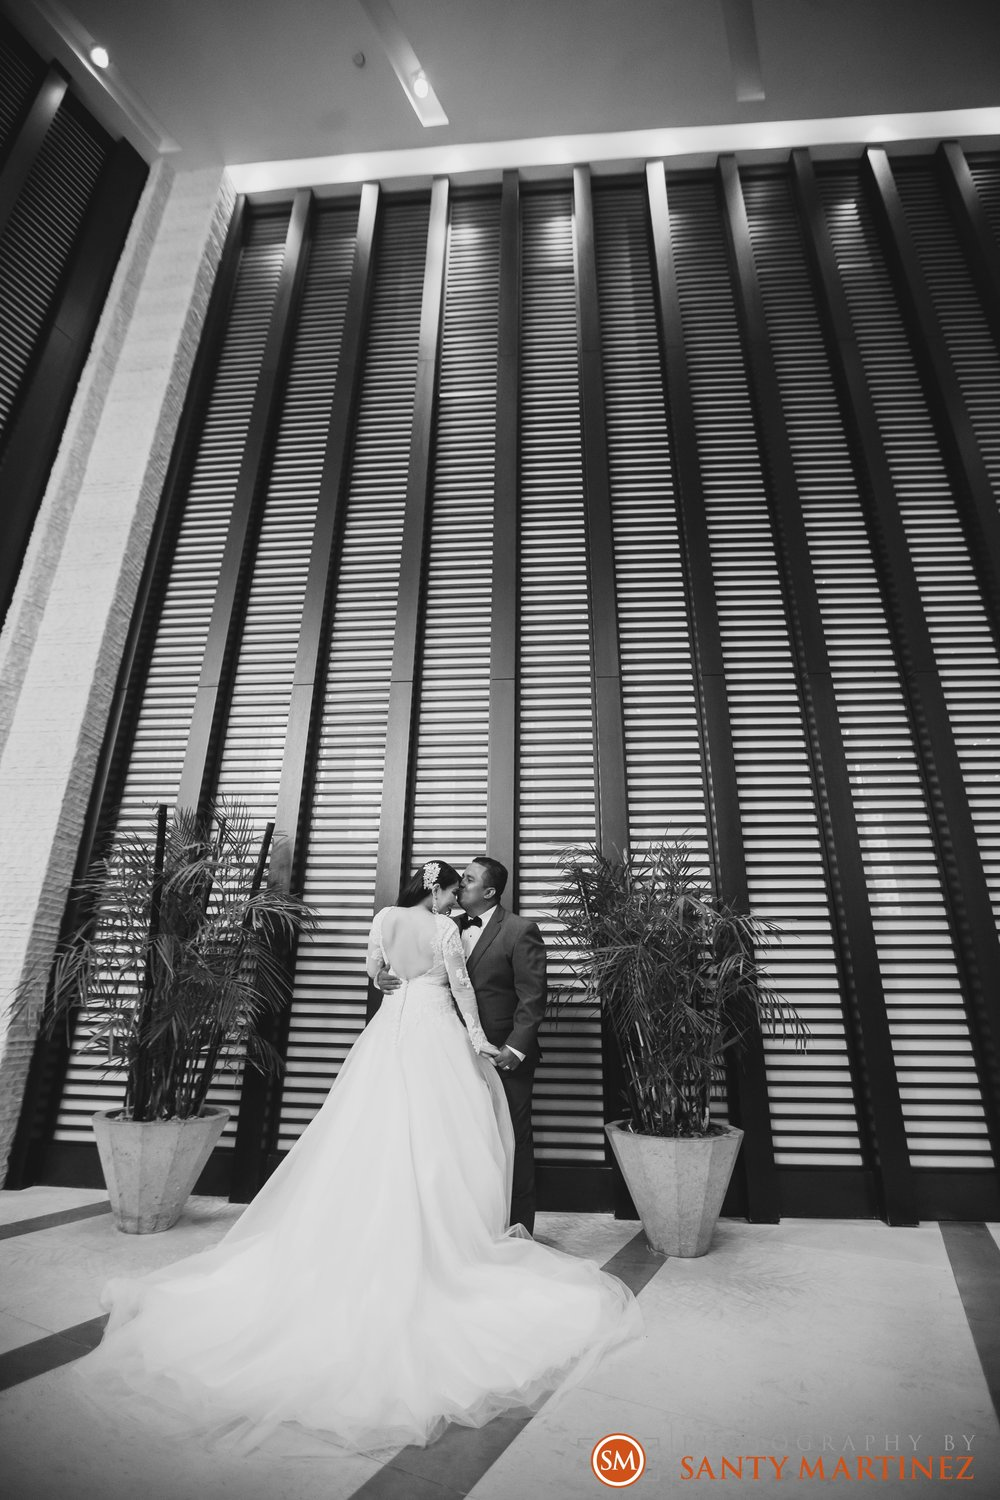 Wedding Epic Hotel Miami - Photography by Santy Martinez-37.jpg